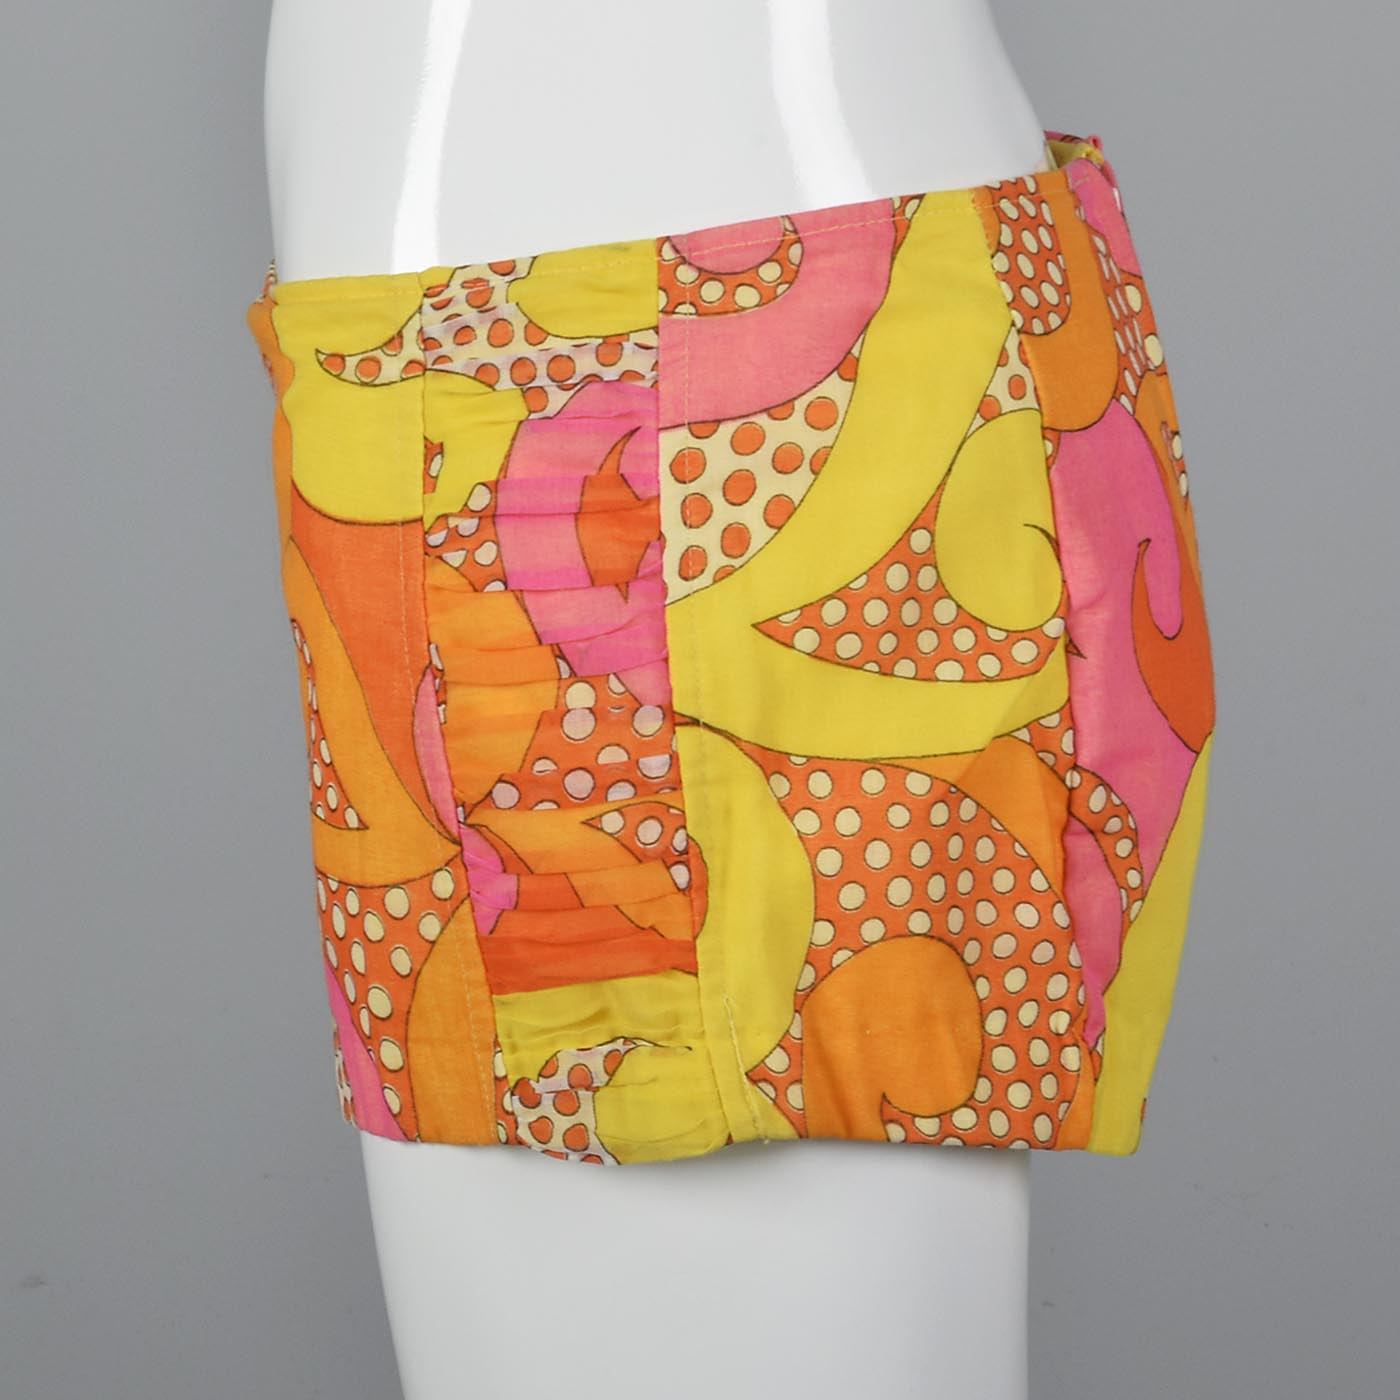 1960s Psychedelic Hot Pants